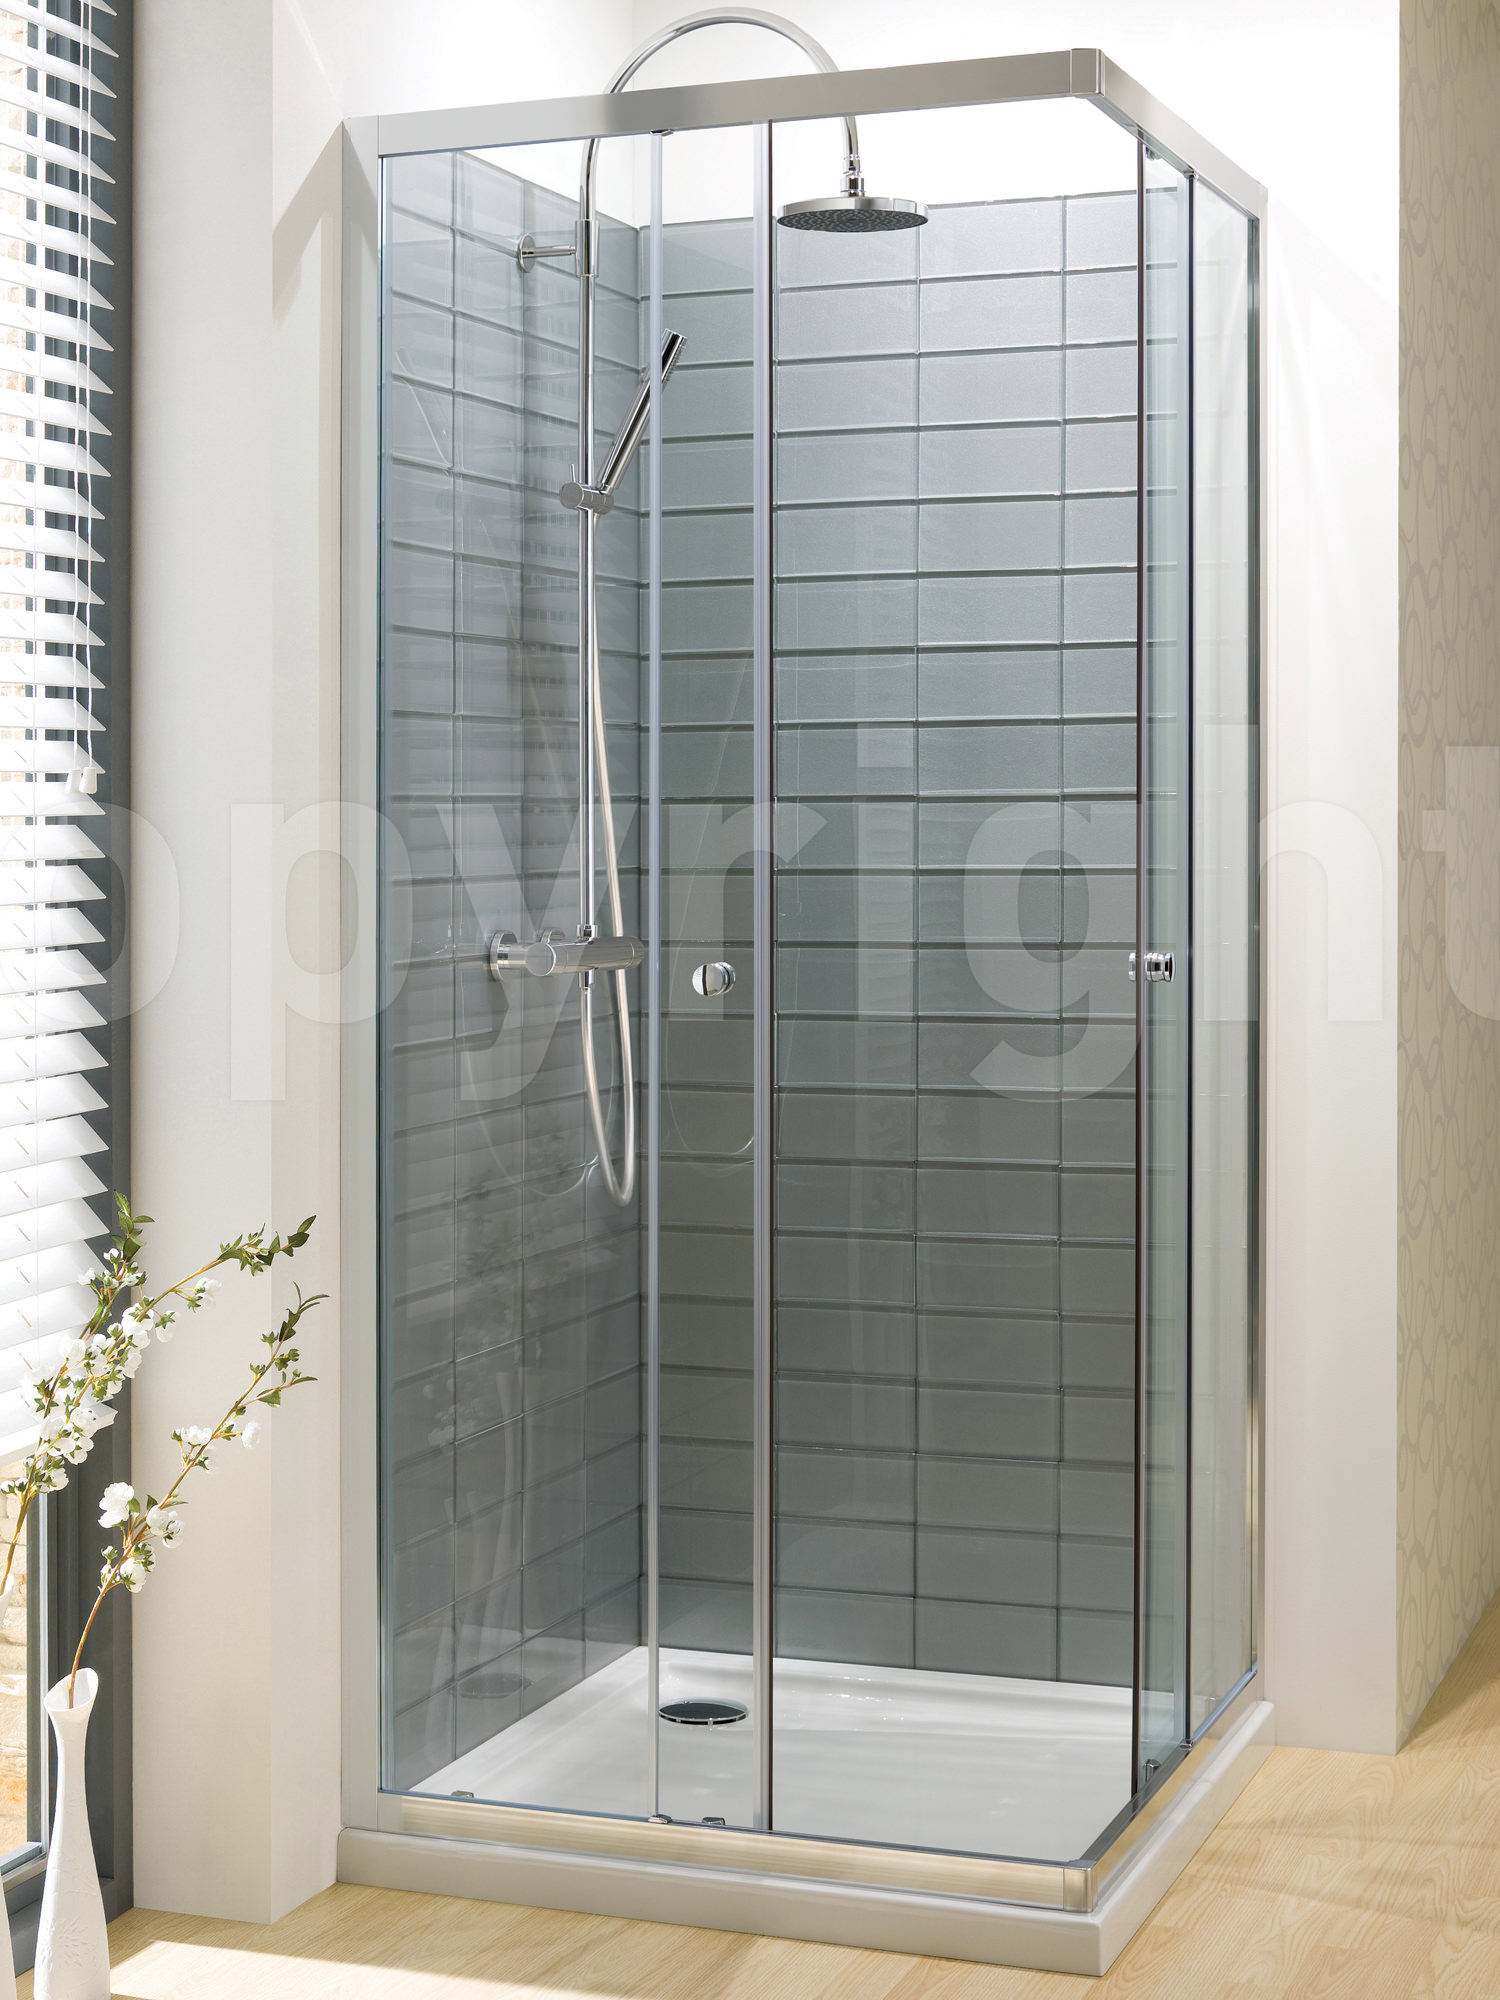 Simpons Edge Quadrant Shower Enclosure & Shower Doors